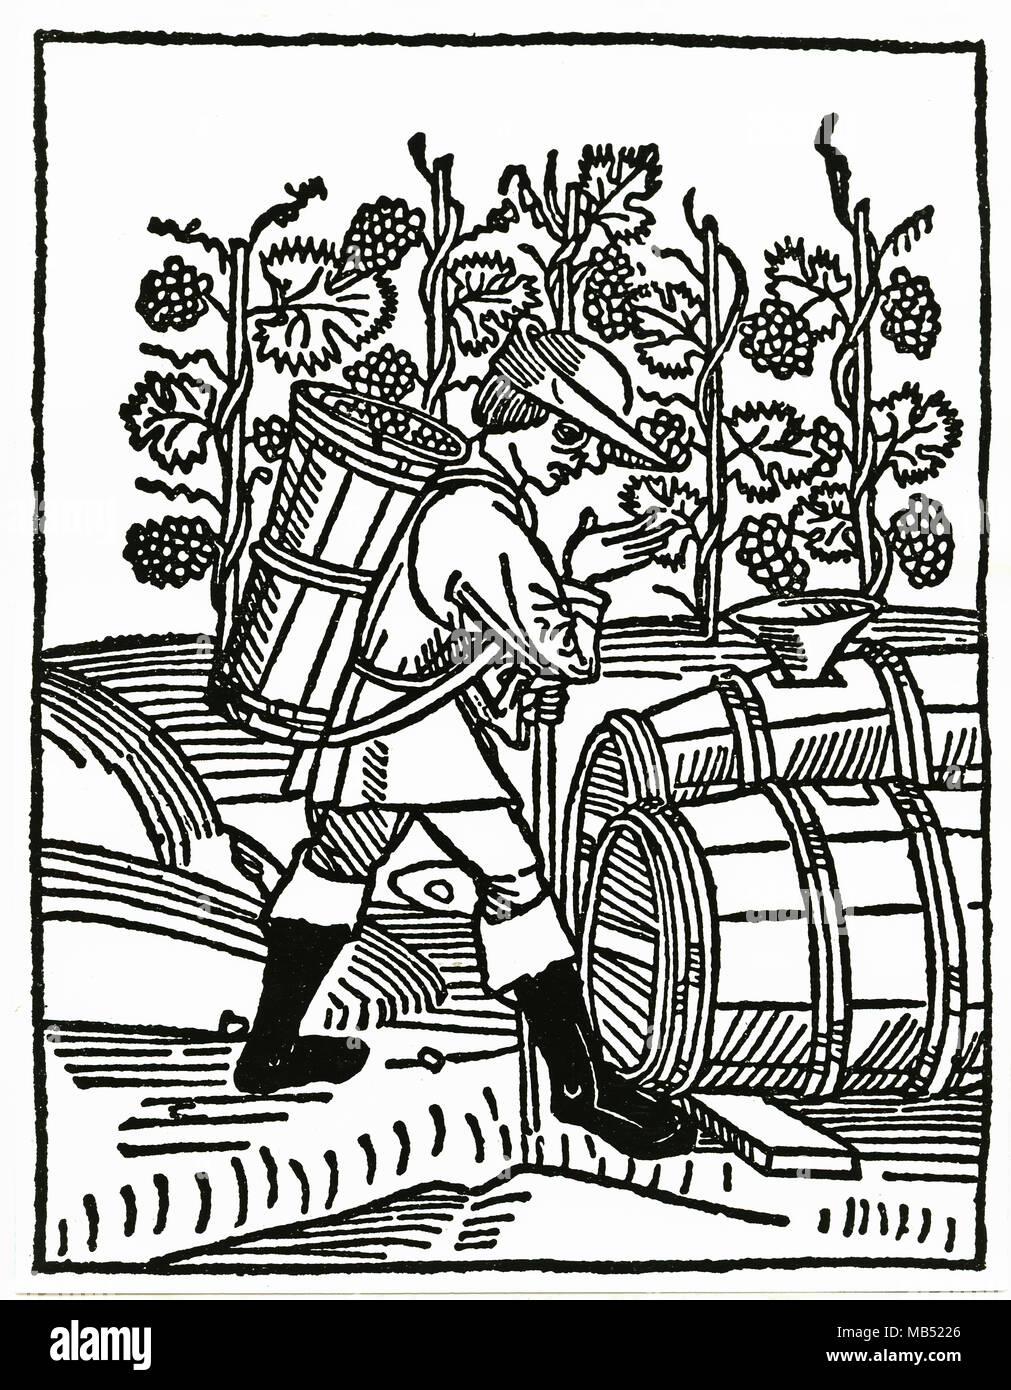 Grape grape harvest, medieval times, woodcut - Stock Image